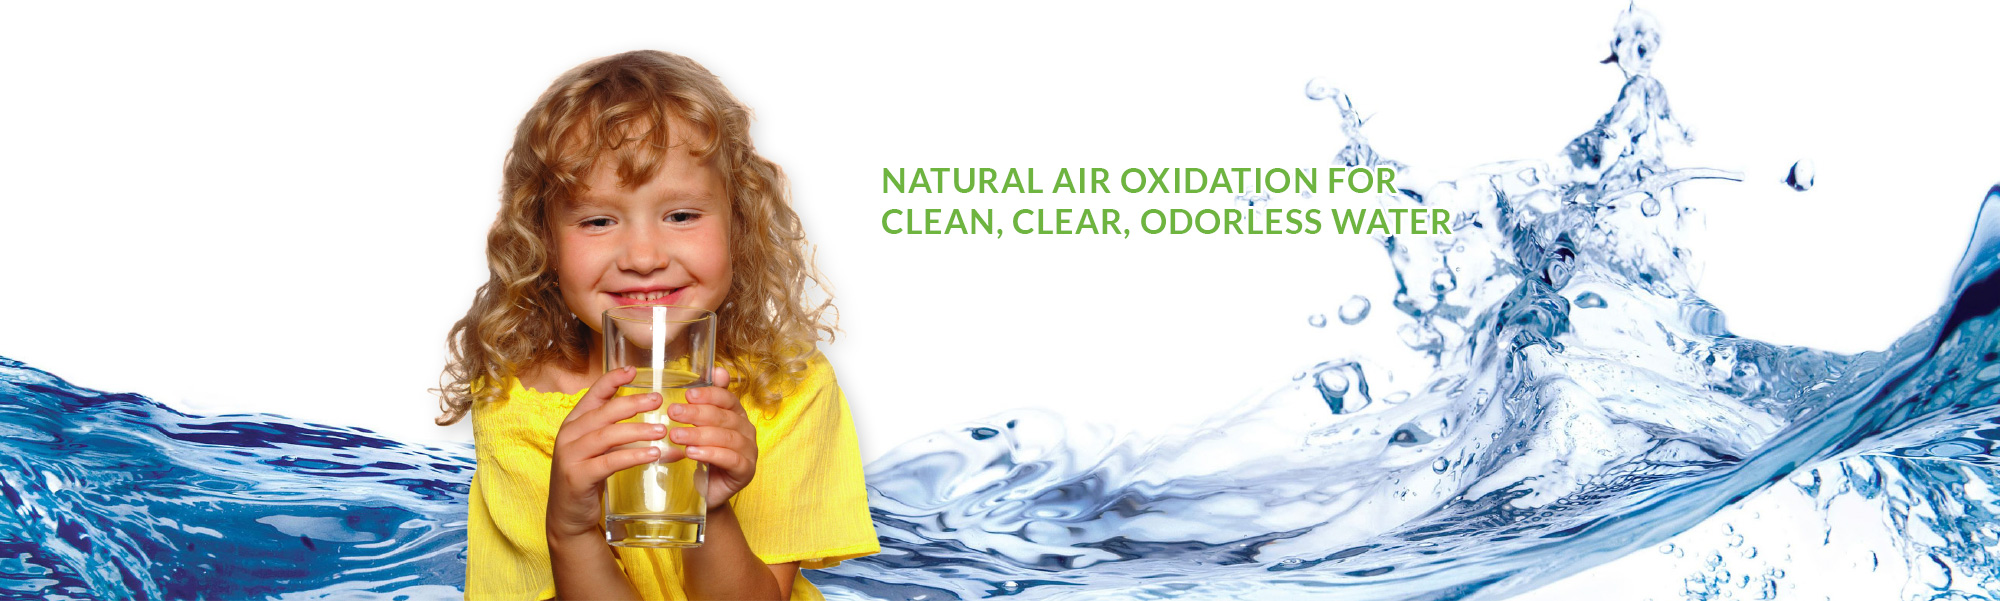 Natural air oxidation for clean, clear, odorless water